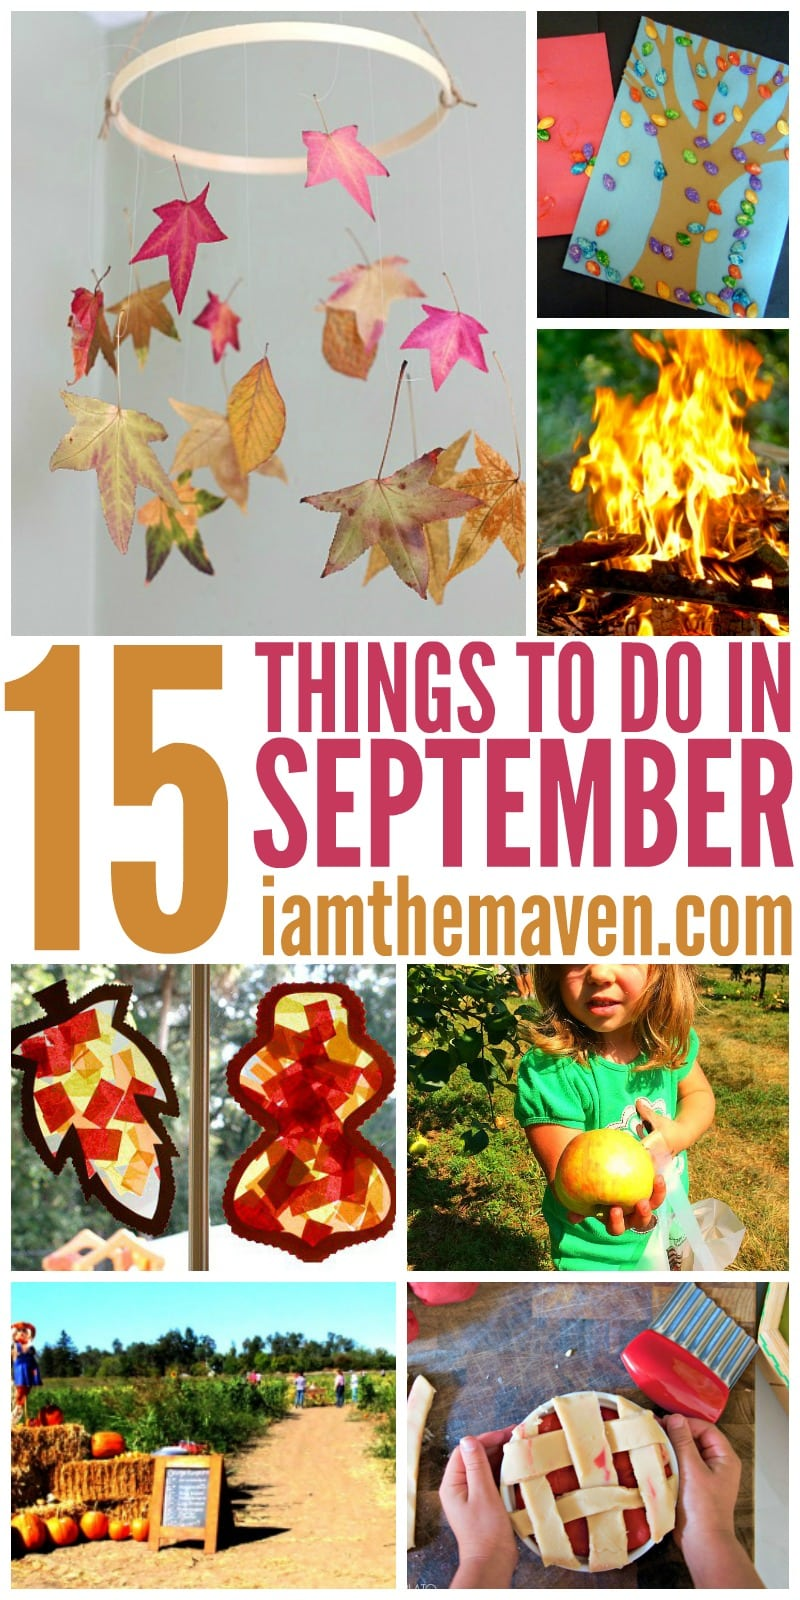 These is a list of things to do in September